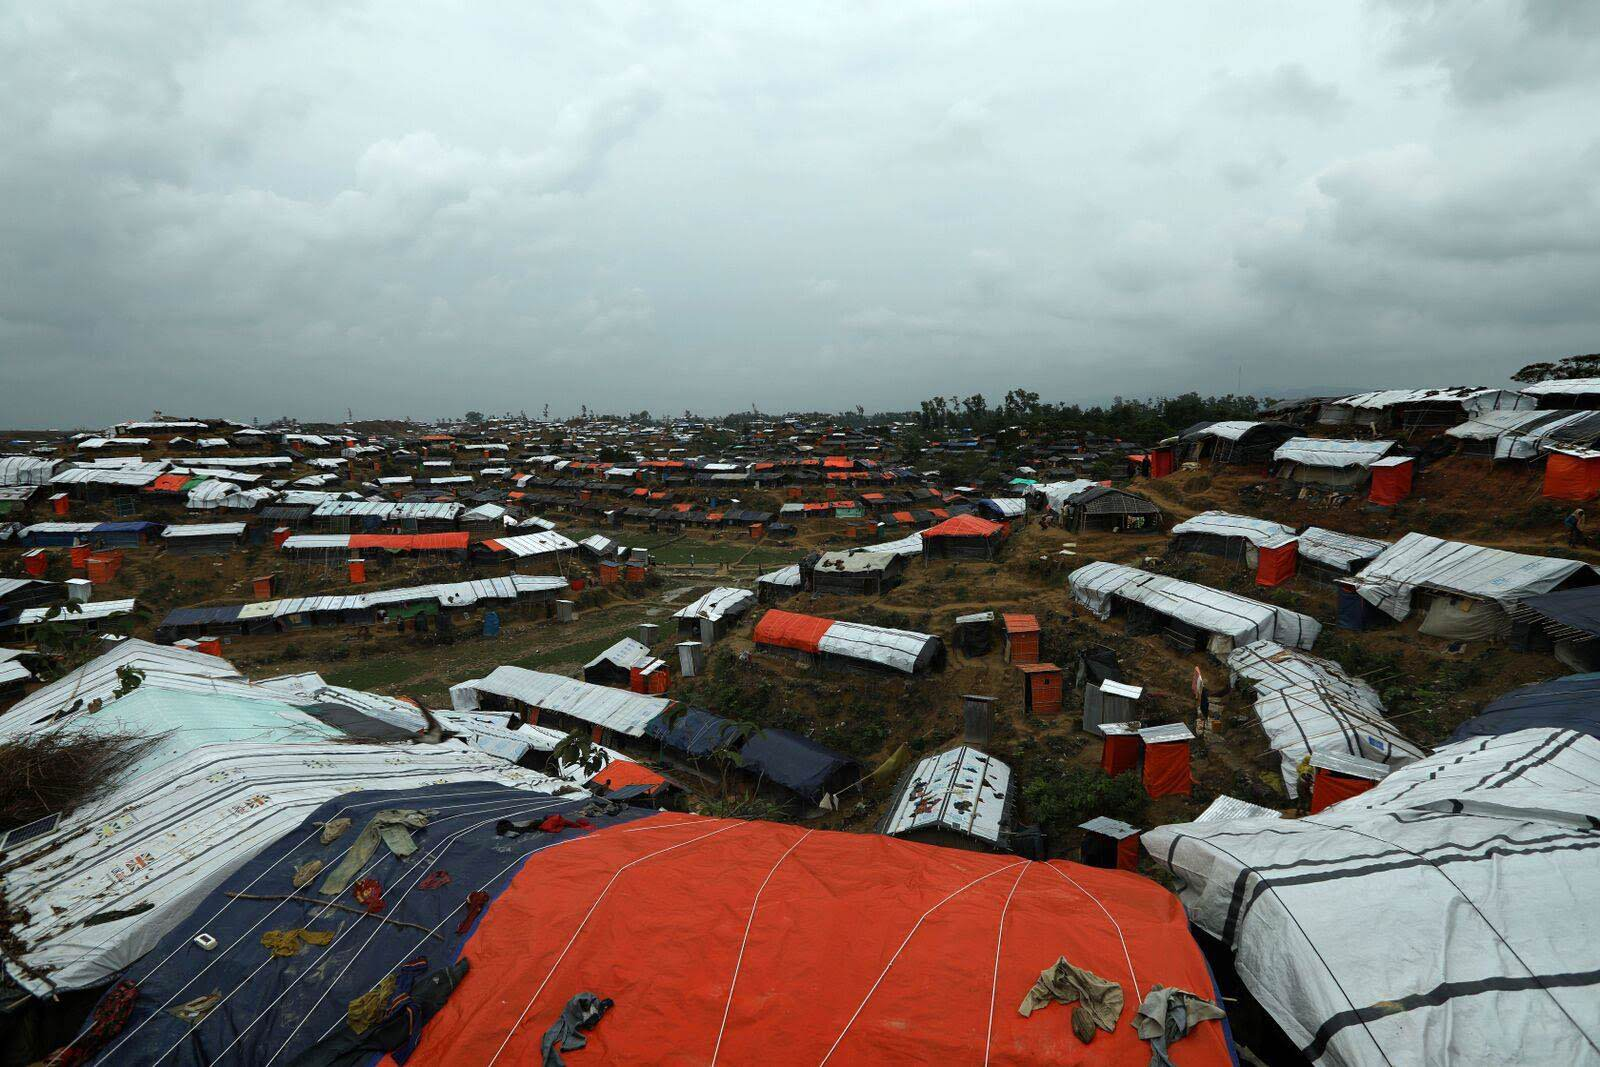 Direct Relief is coordinating with HOPE Hospital in Cox's Bazar, Bangladesh, to establish field hospitals throughout settlements of Rohingya refugees. (Photo courtesy of Josh Estey and HOPE Hospital)